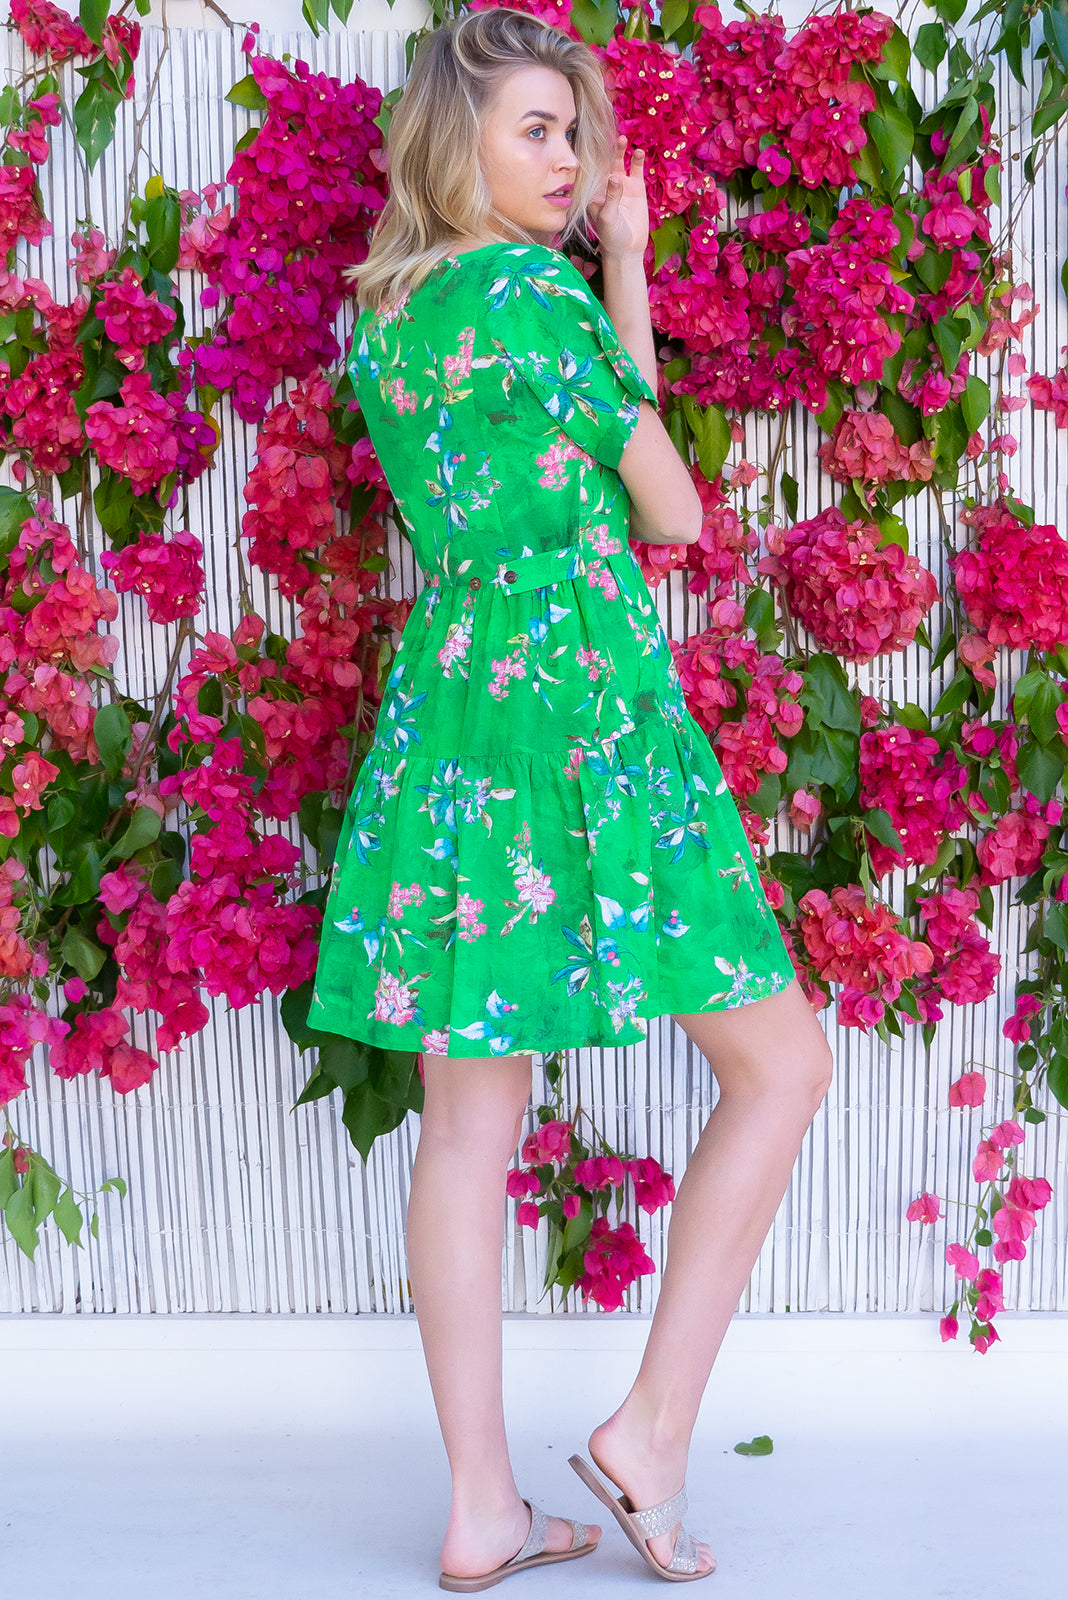 The Airlie Secret Garden Green Mini Dress features functional button down chest to waistline., two-tiered gathered skirt, adjustable button plackets at back to cinch waist, side pockets and 100% cotton in vivid green tie dye effect base with floral print.